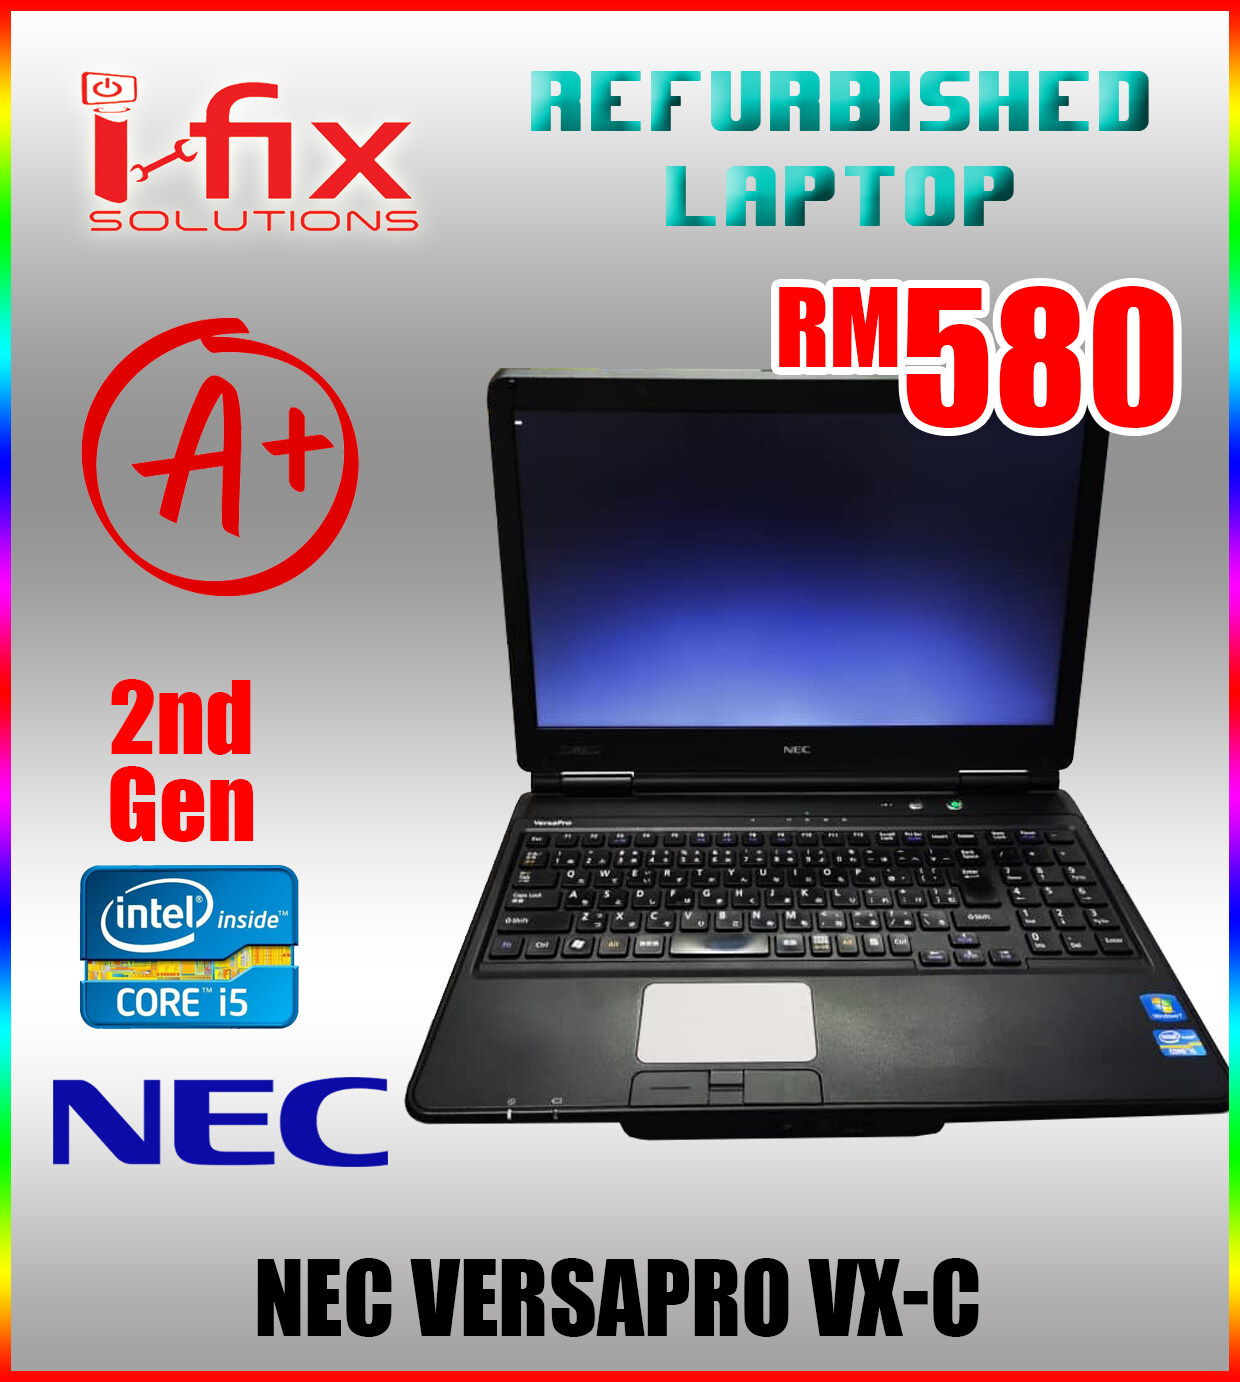 NEC VERSAPRO VXC Intel Core i5  2nd gen  4GB DDR3  120GB HDD 15.6 Screen (Refurbished Laptop) Malaysia